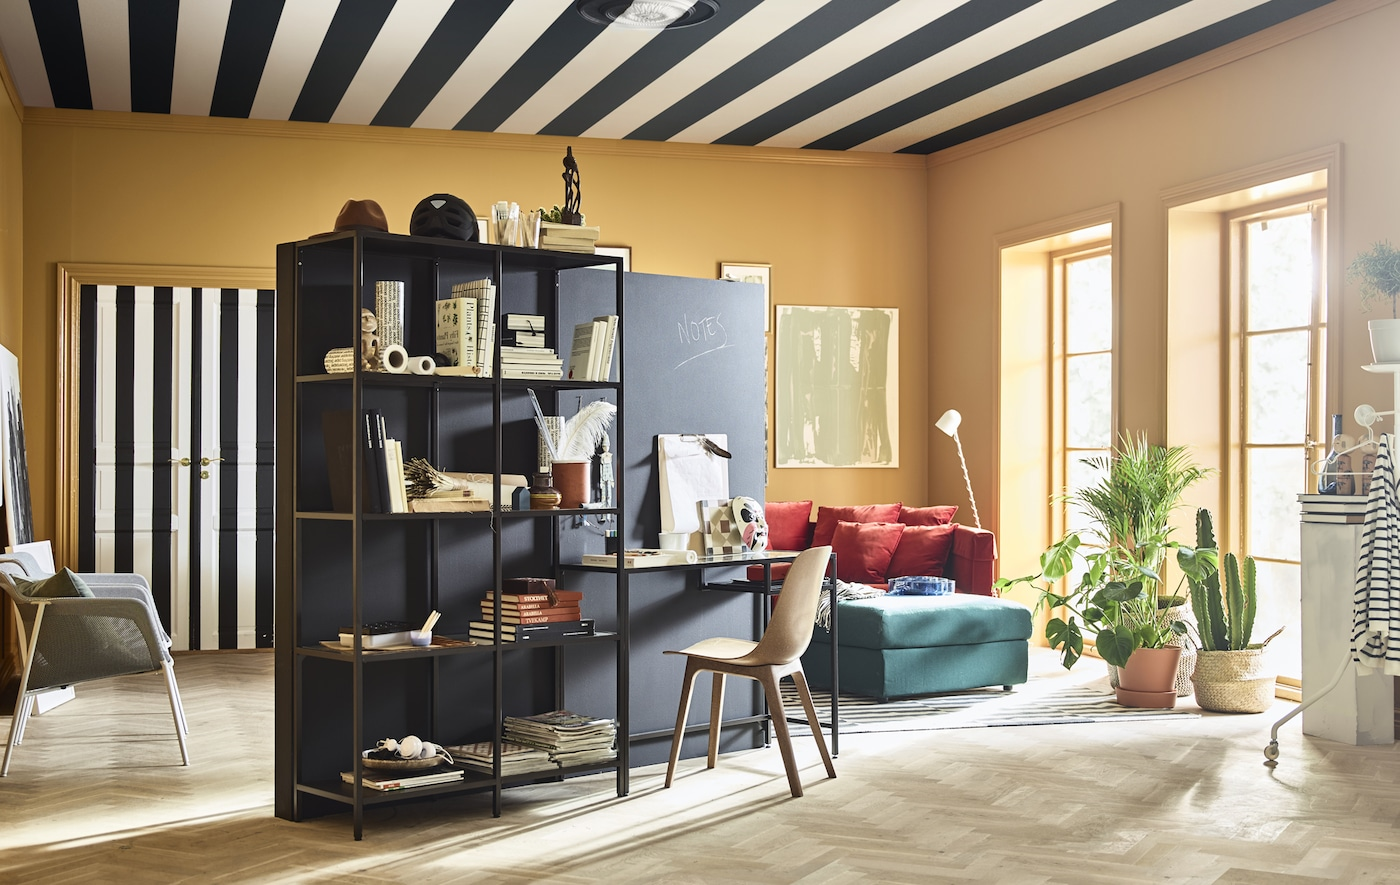 A brightly colored, creative living room is furnished with a stand-alone wall and work station in the center of the room.